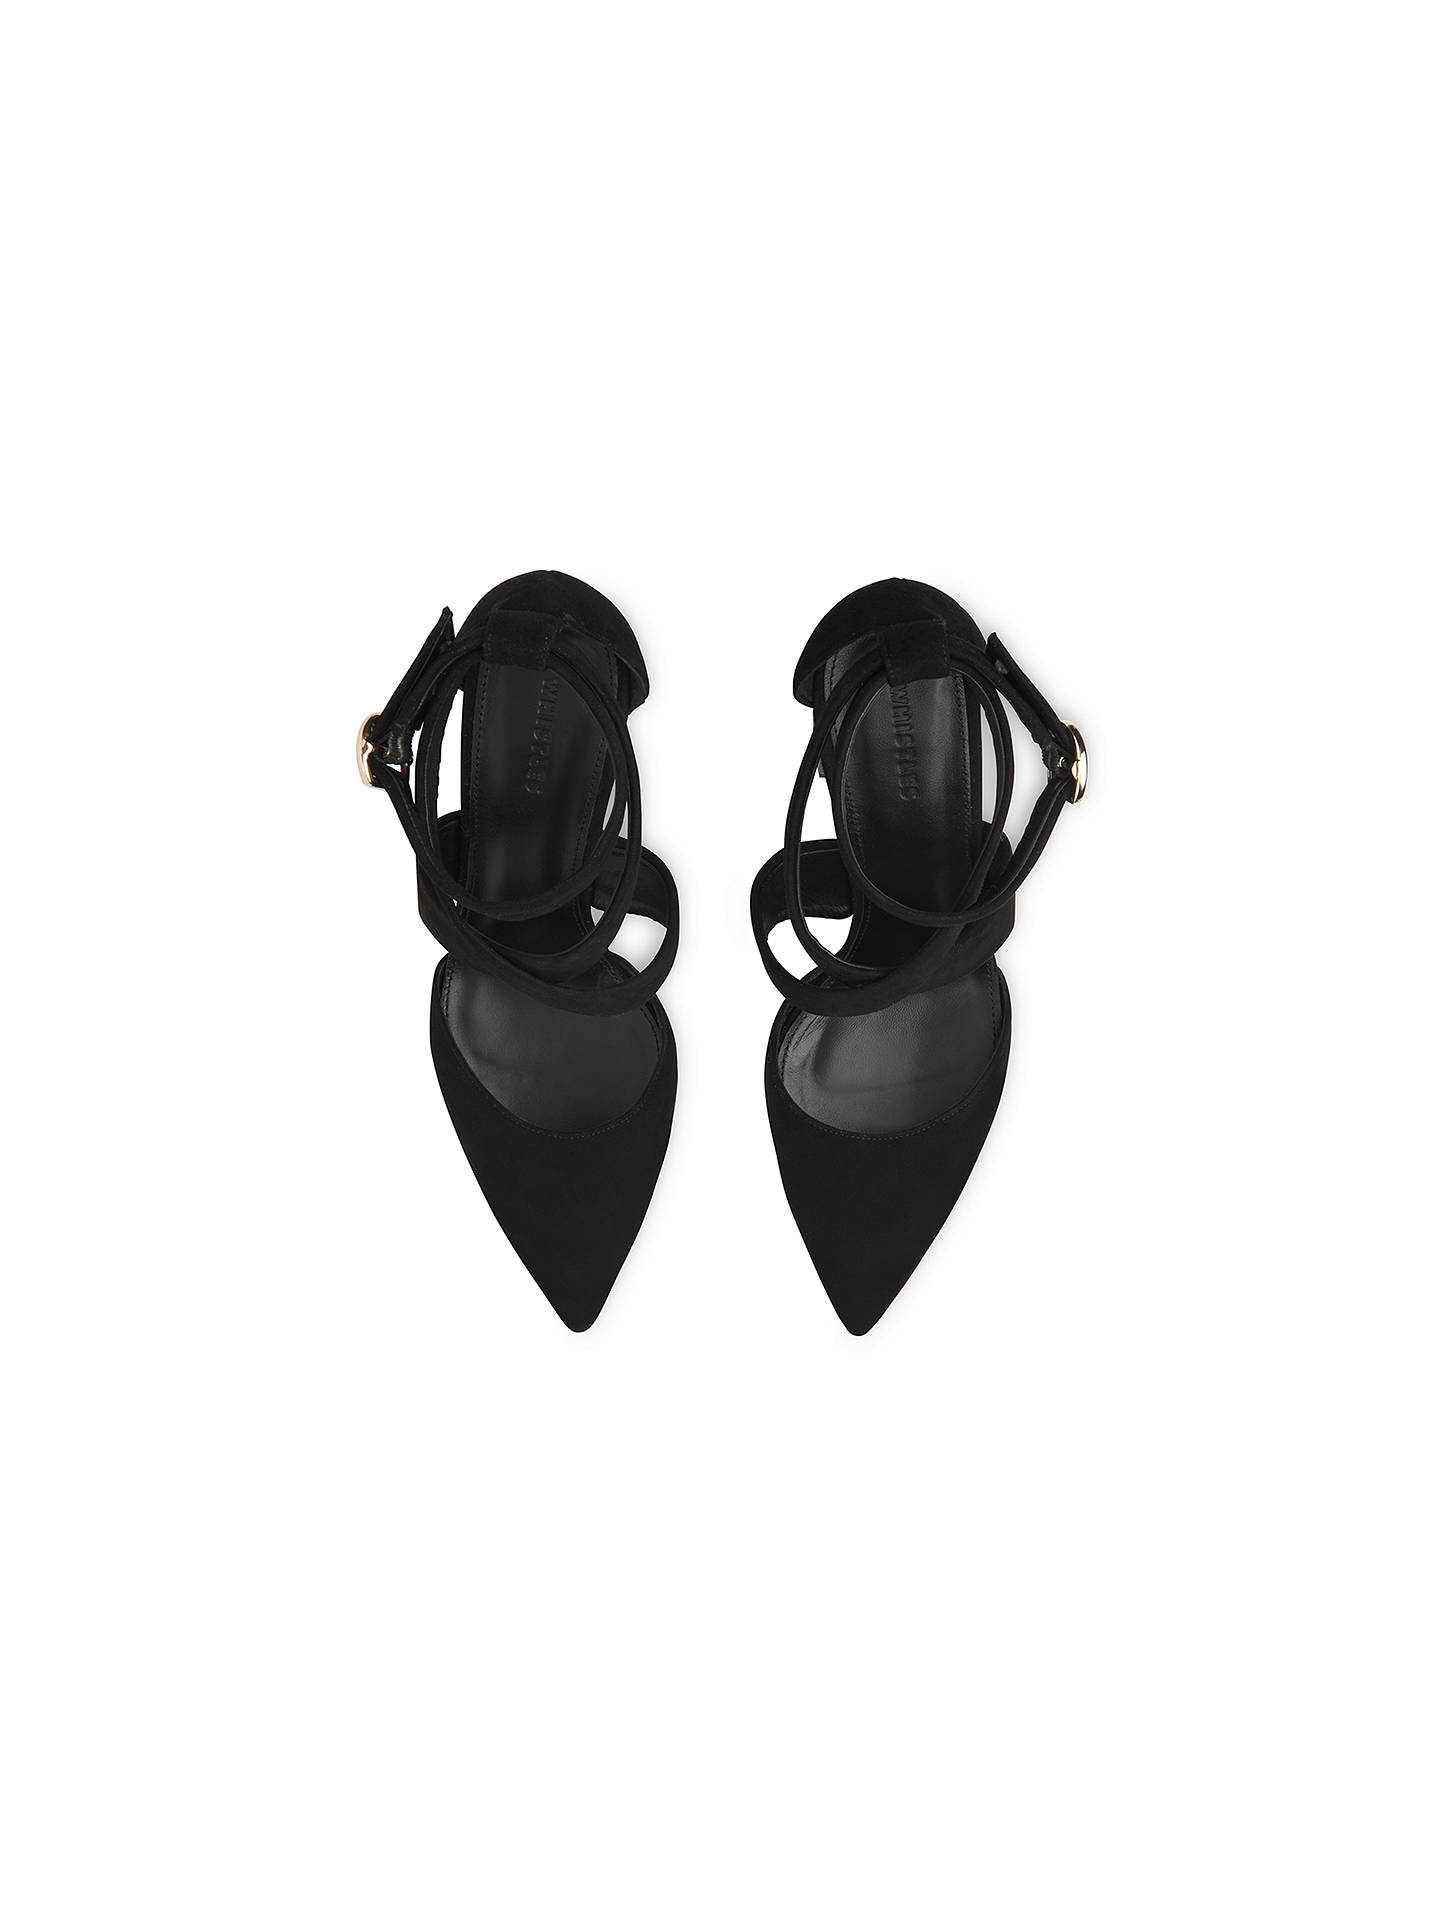 26d74703d358 Whistles Taylor Cross Strap Block Heeled Court Shoes at John Lewis ...